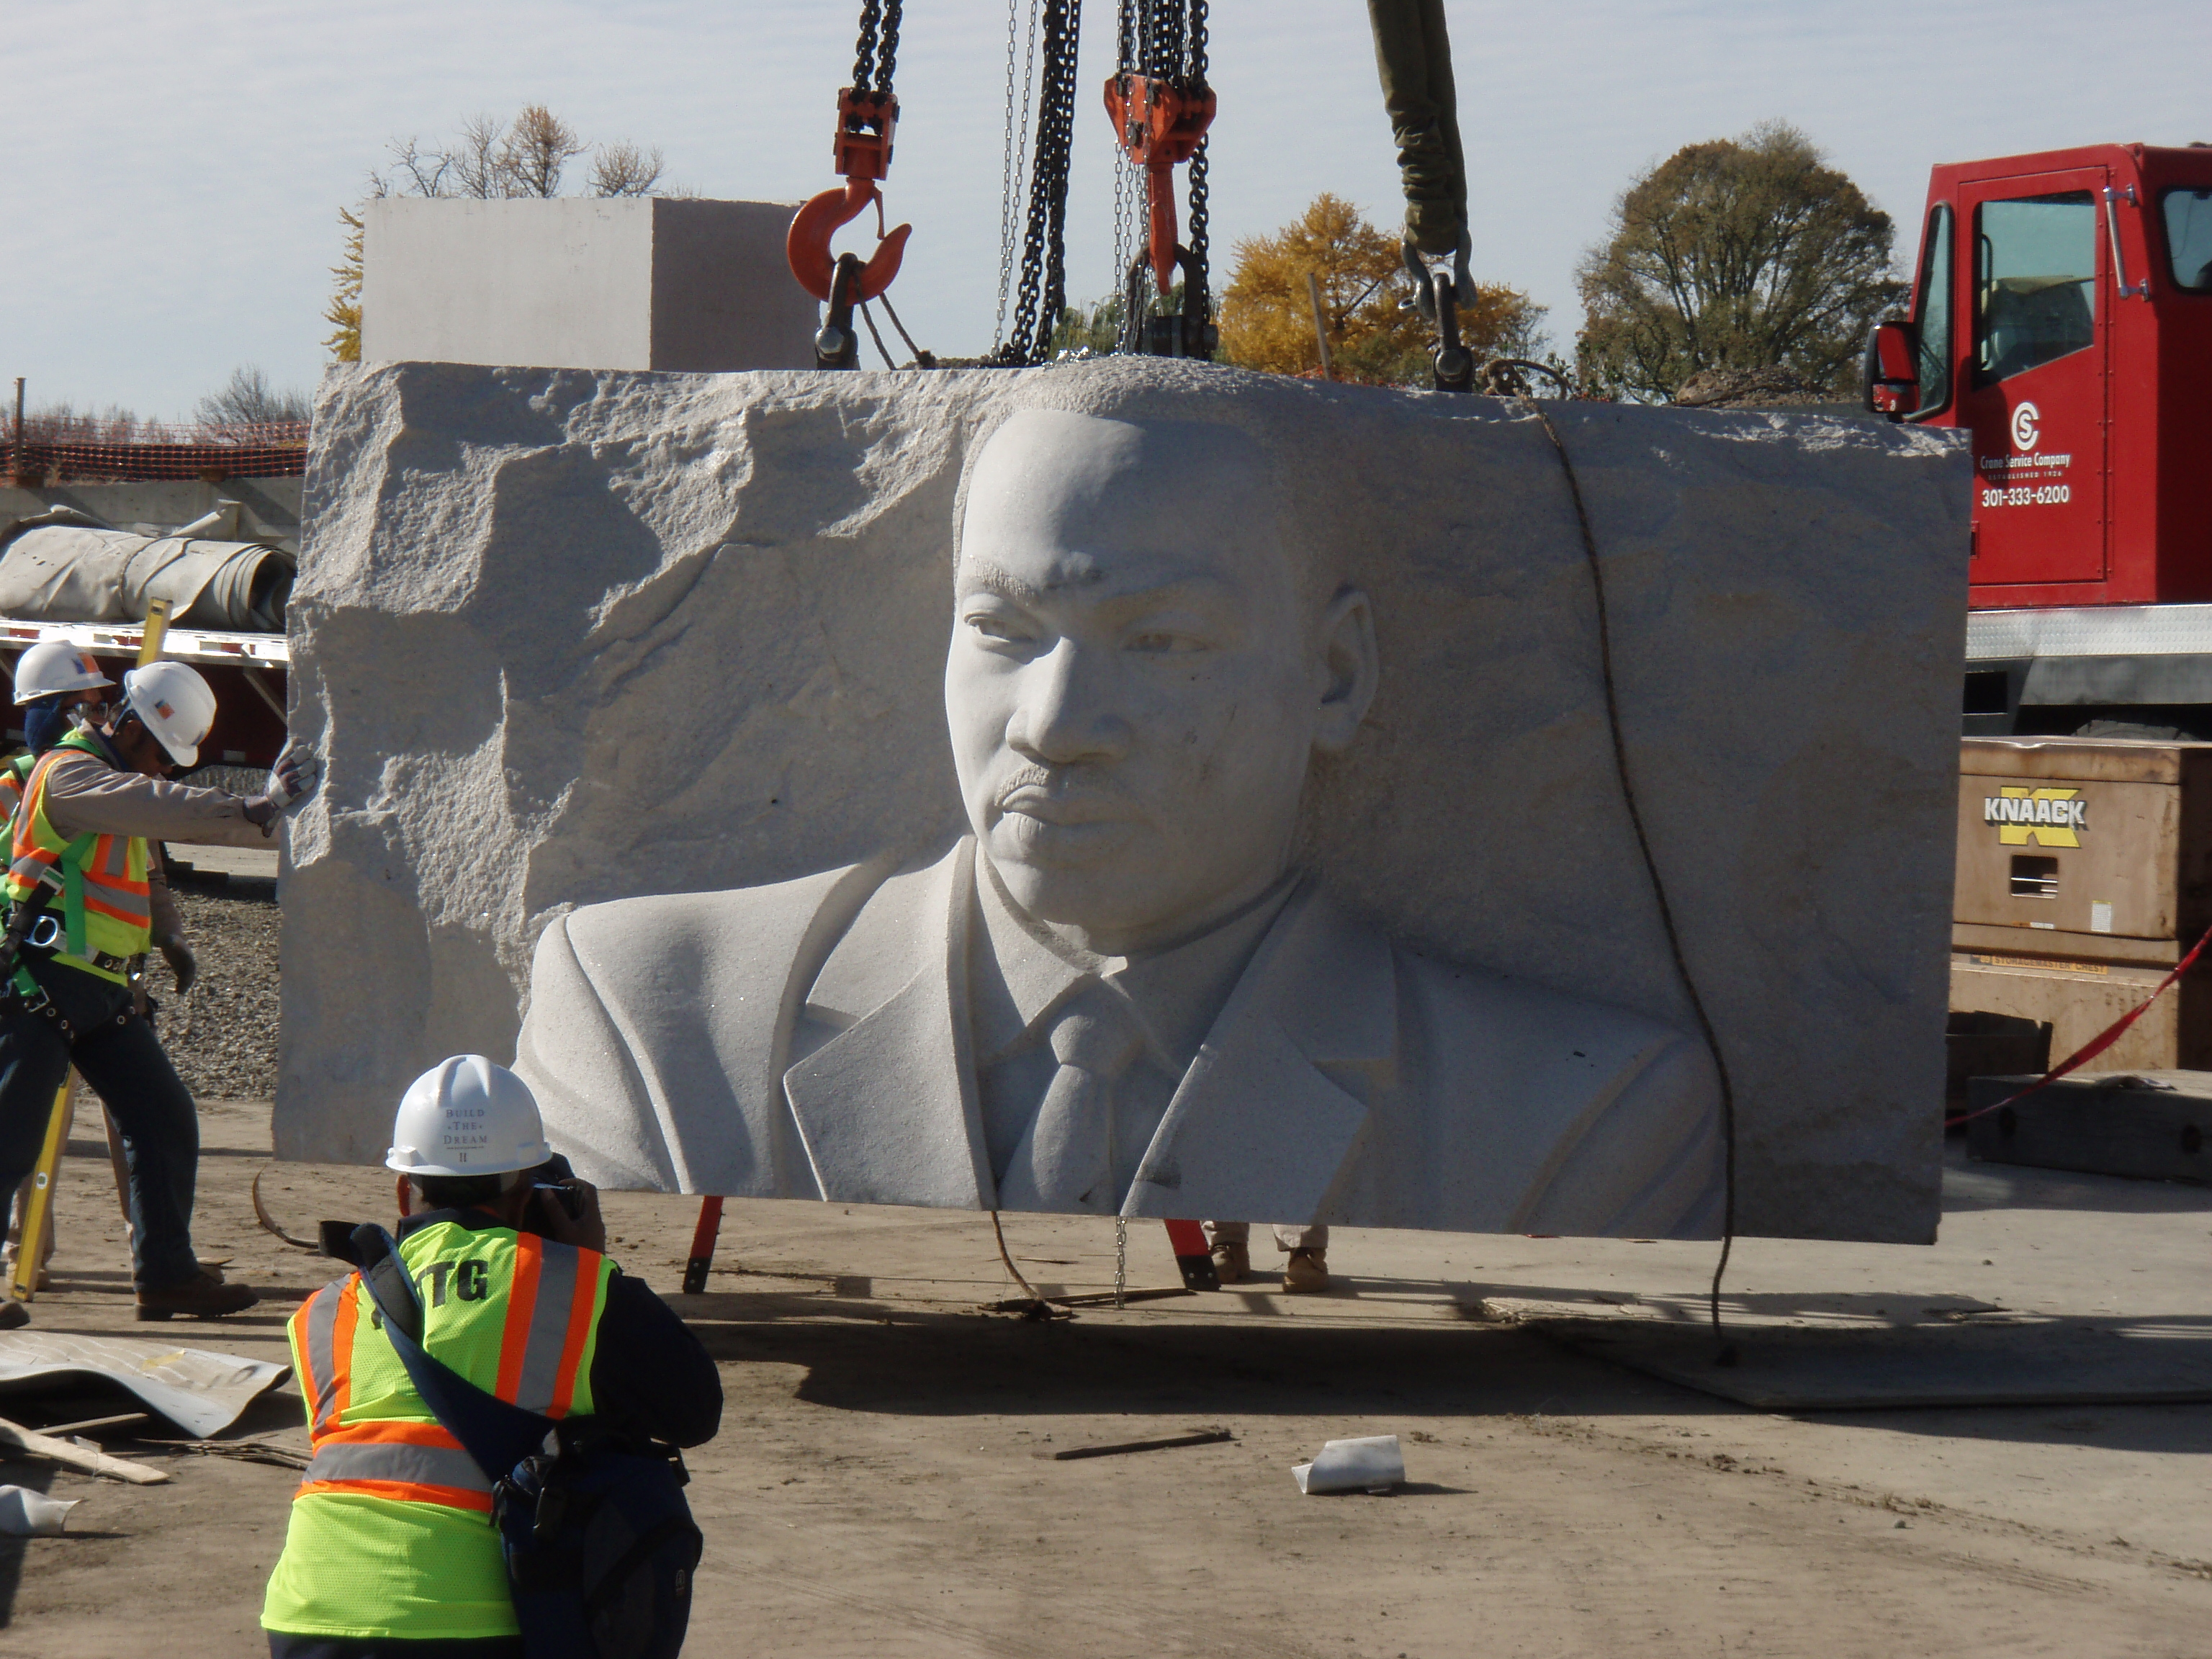 A granite slab with MLK's likeness is lifted by crane